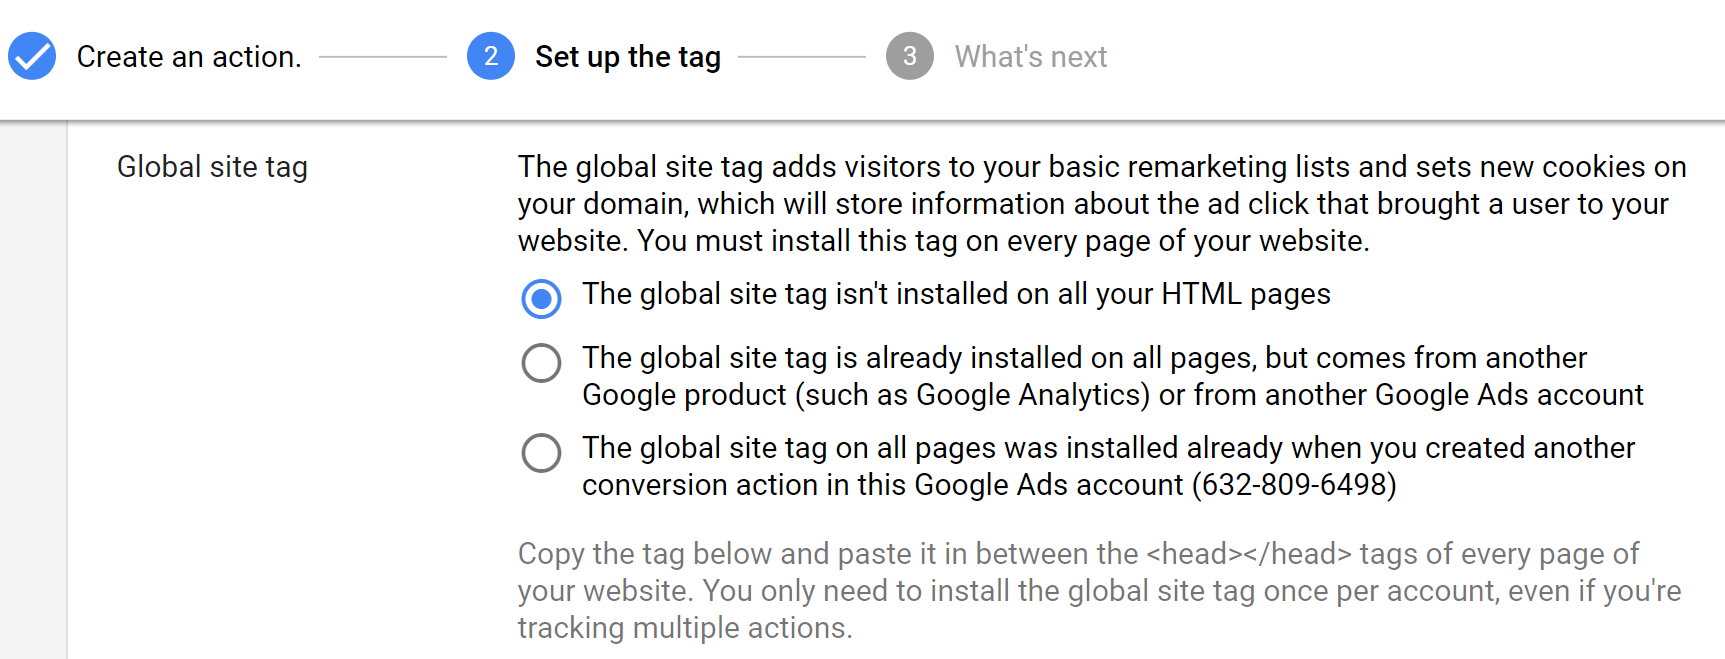 Choose the global site tag option.